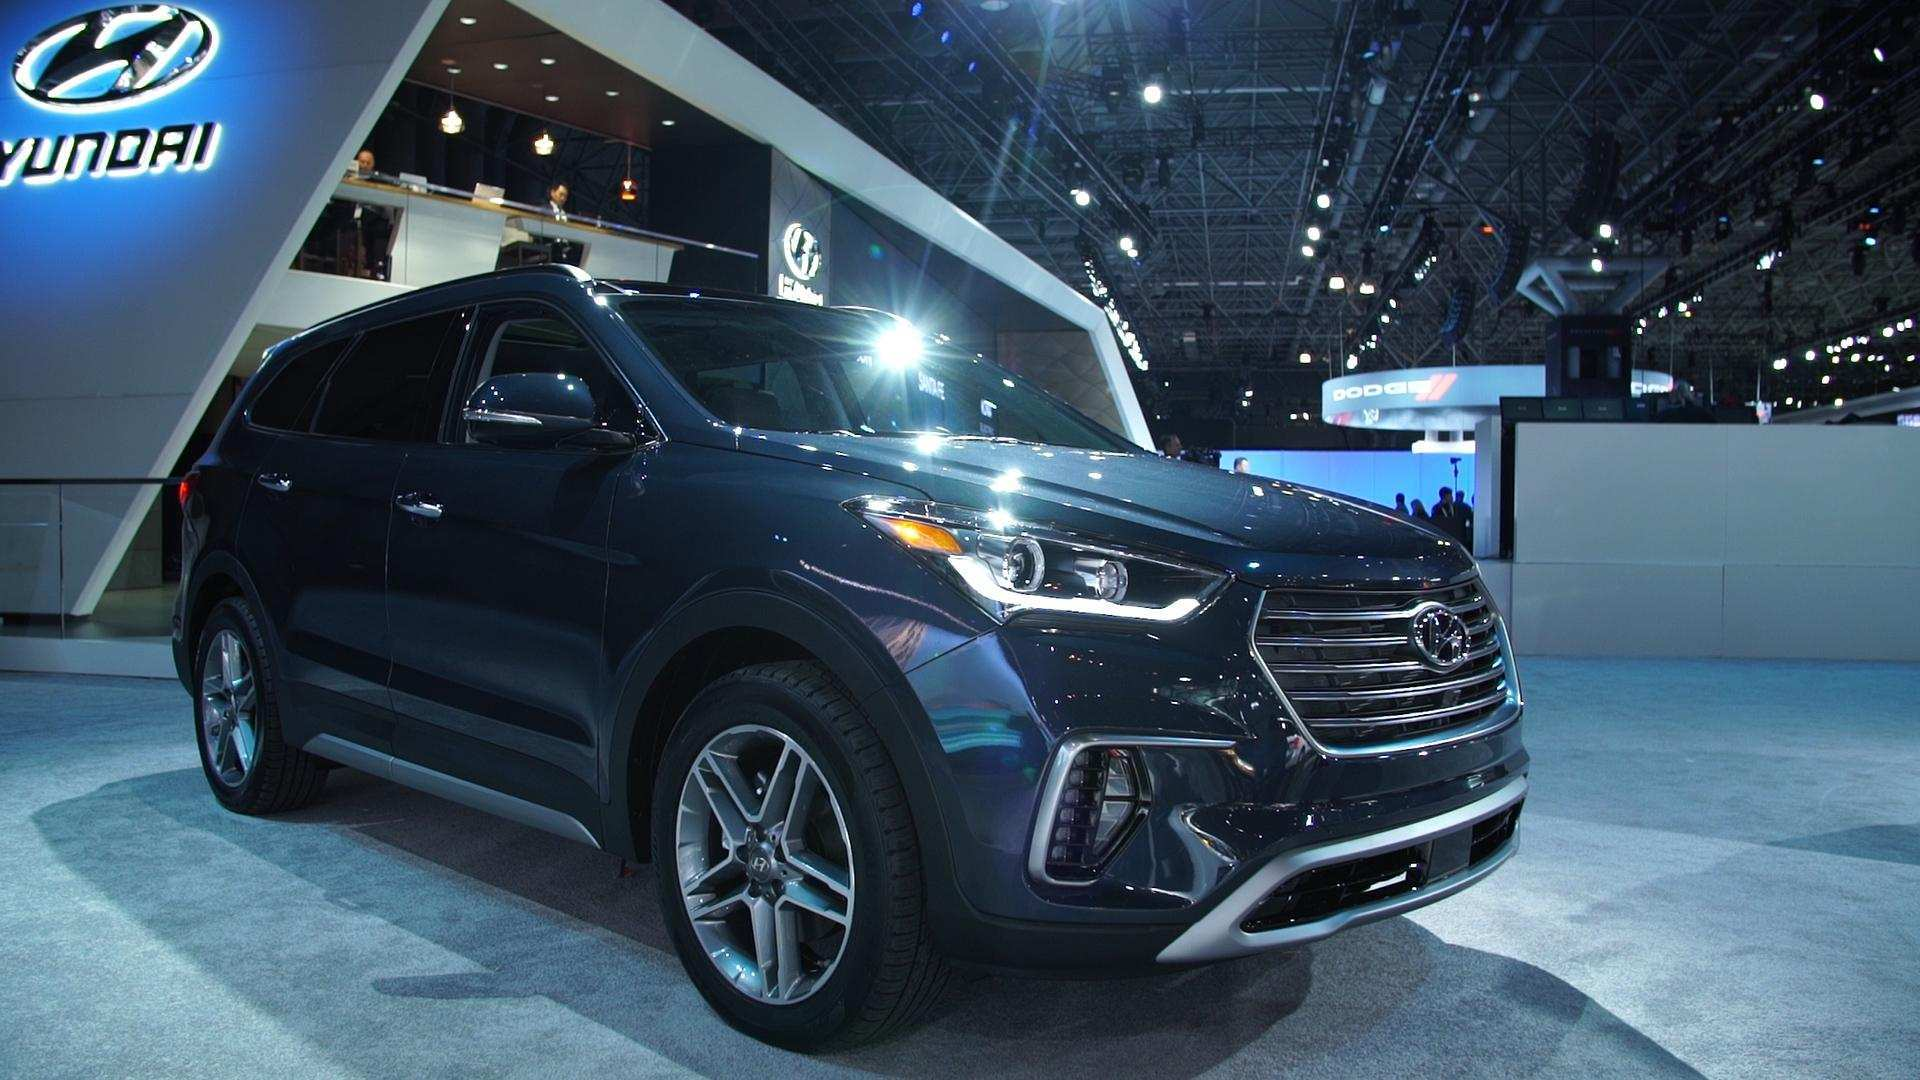 51 Gallery of 2019 Hyundai Santa Fe Sport Redesign Price and Review for 2019 Hyundai Santa Fe Sport Redesign